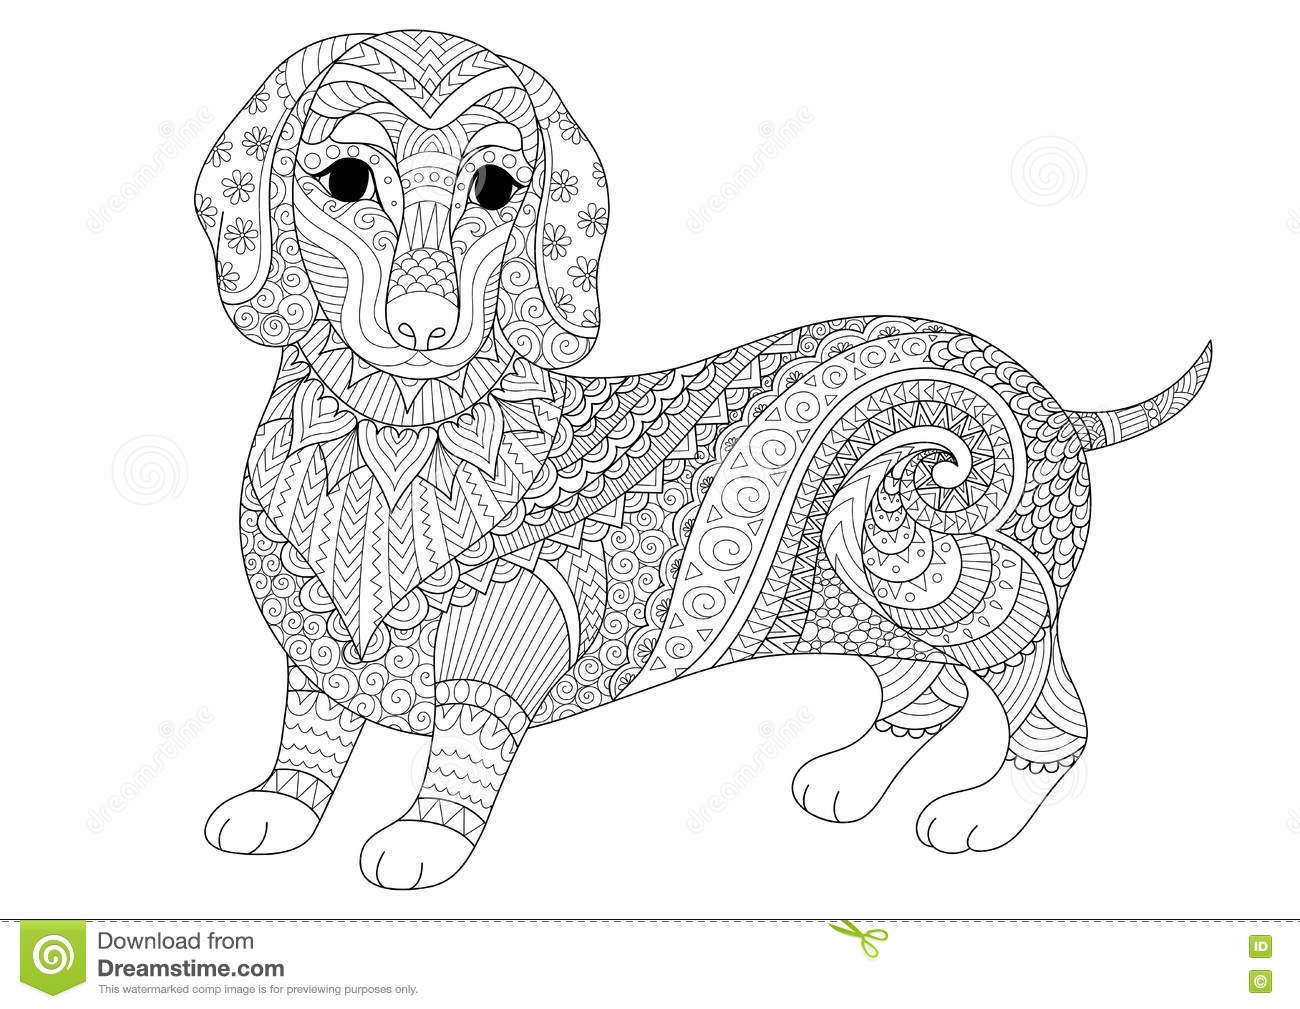 Zendoodle design of dachshund puppy for adult coloring - Dessin teckel ...